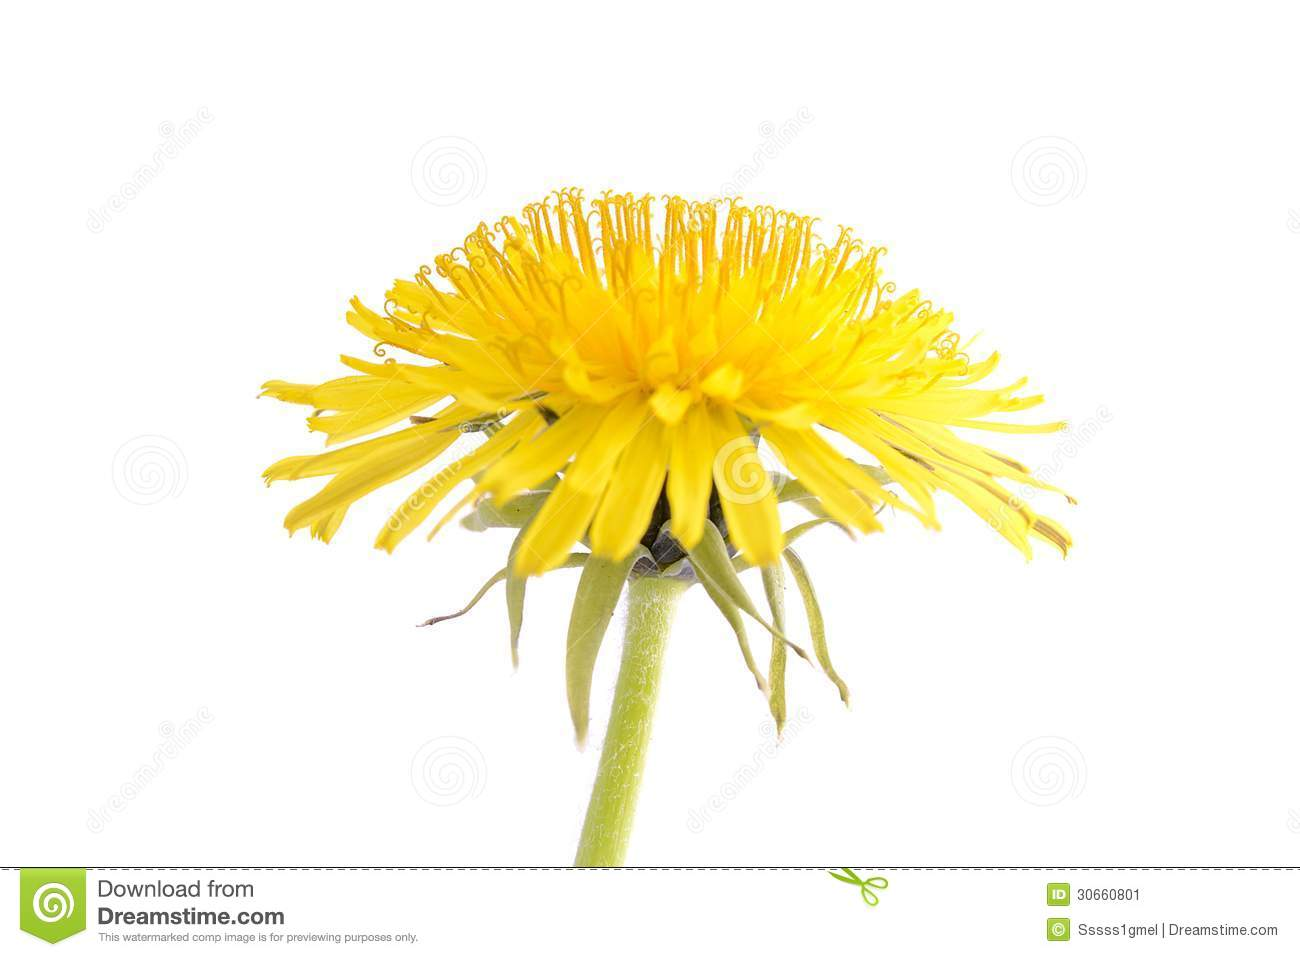 Dandelion isolated on a white background